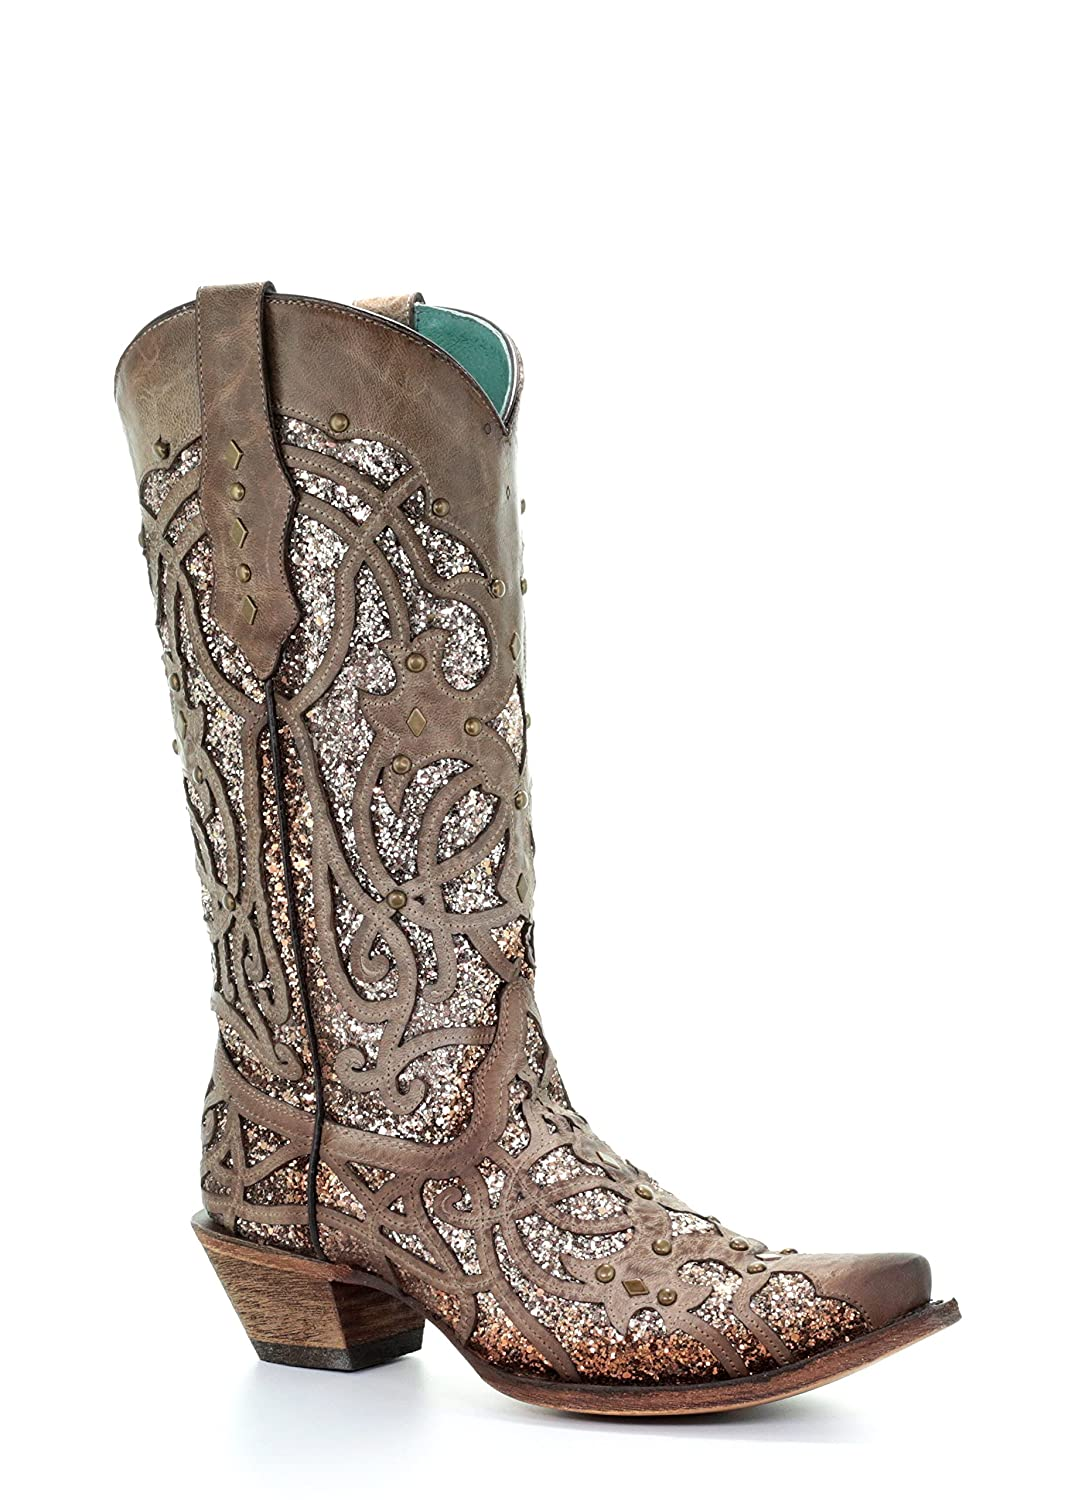 Corral Women's Luminary Glitter Inlay Studs Snip Toe Leather Cowgirl Boots - Orix B07BJCFJK4 8.5 B(M) US|Brown